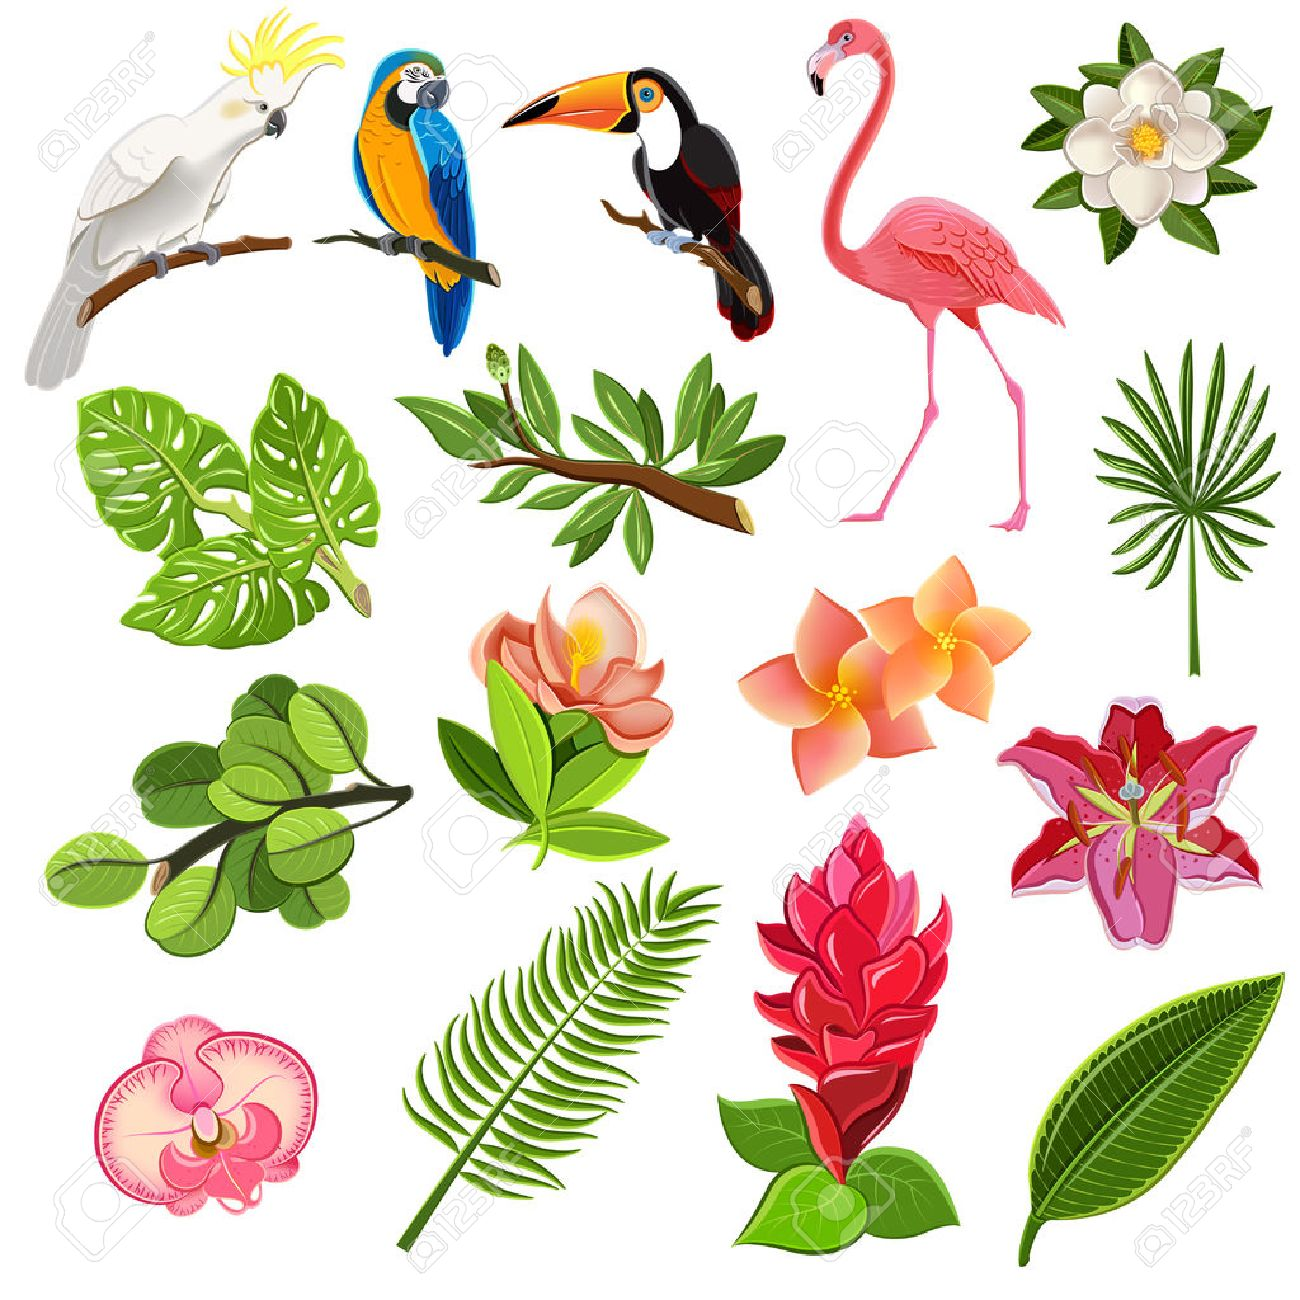 Plant top view vector in group download free vector art stock - Plant Exotic Tropical Leaves And Parrots Pictograms Collection With Orchids Hibiscus And Magnolia Flowers Buds